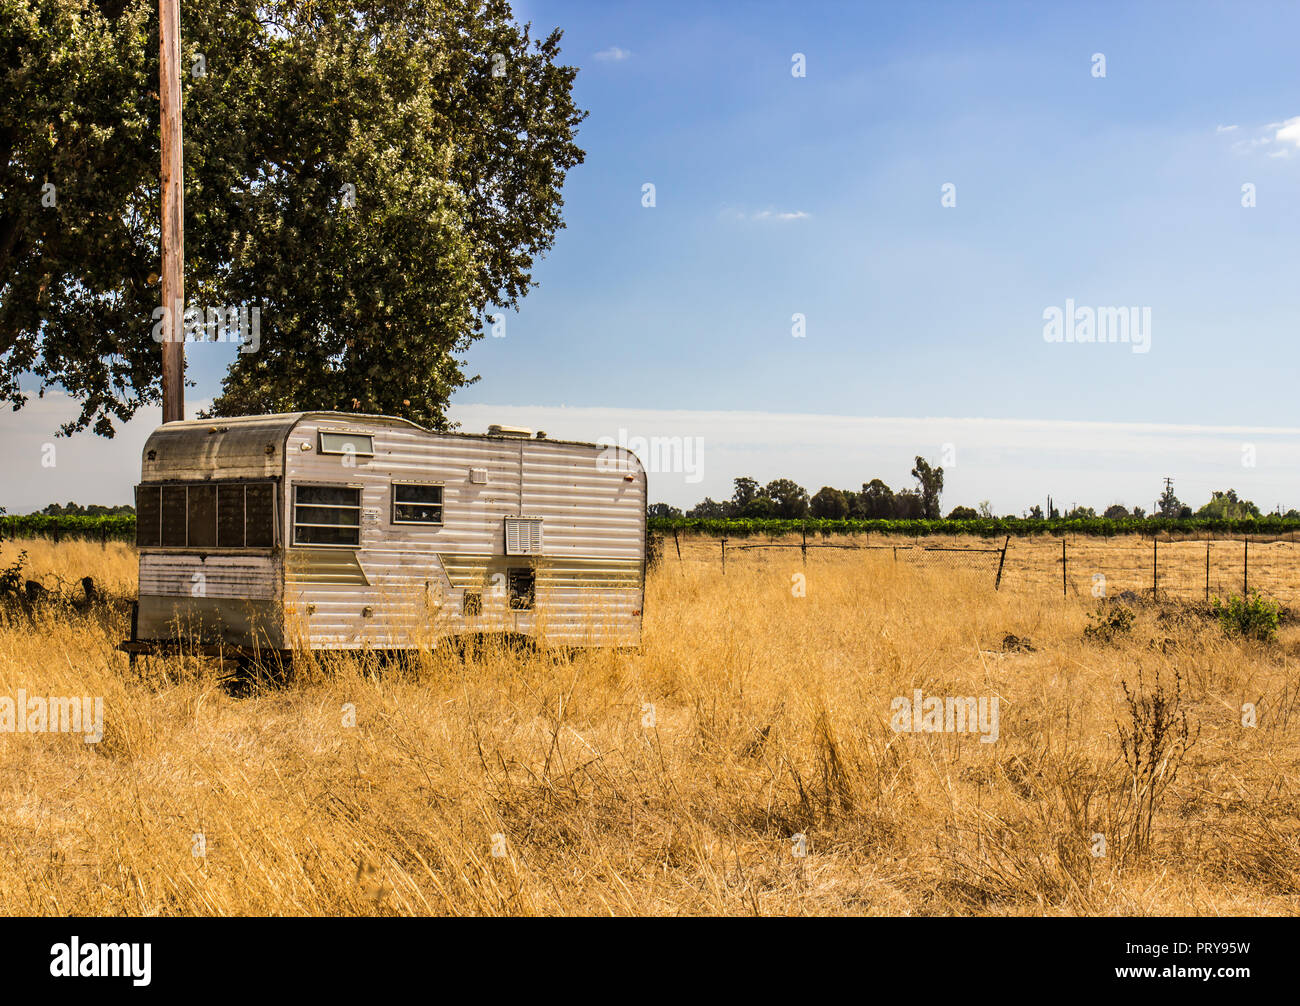 67ae3203f58d30 Trailer Lights Stock Photos   Trailer Lights Stock Images - Alamy